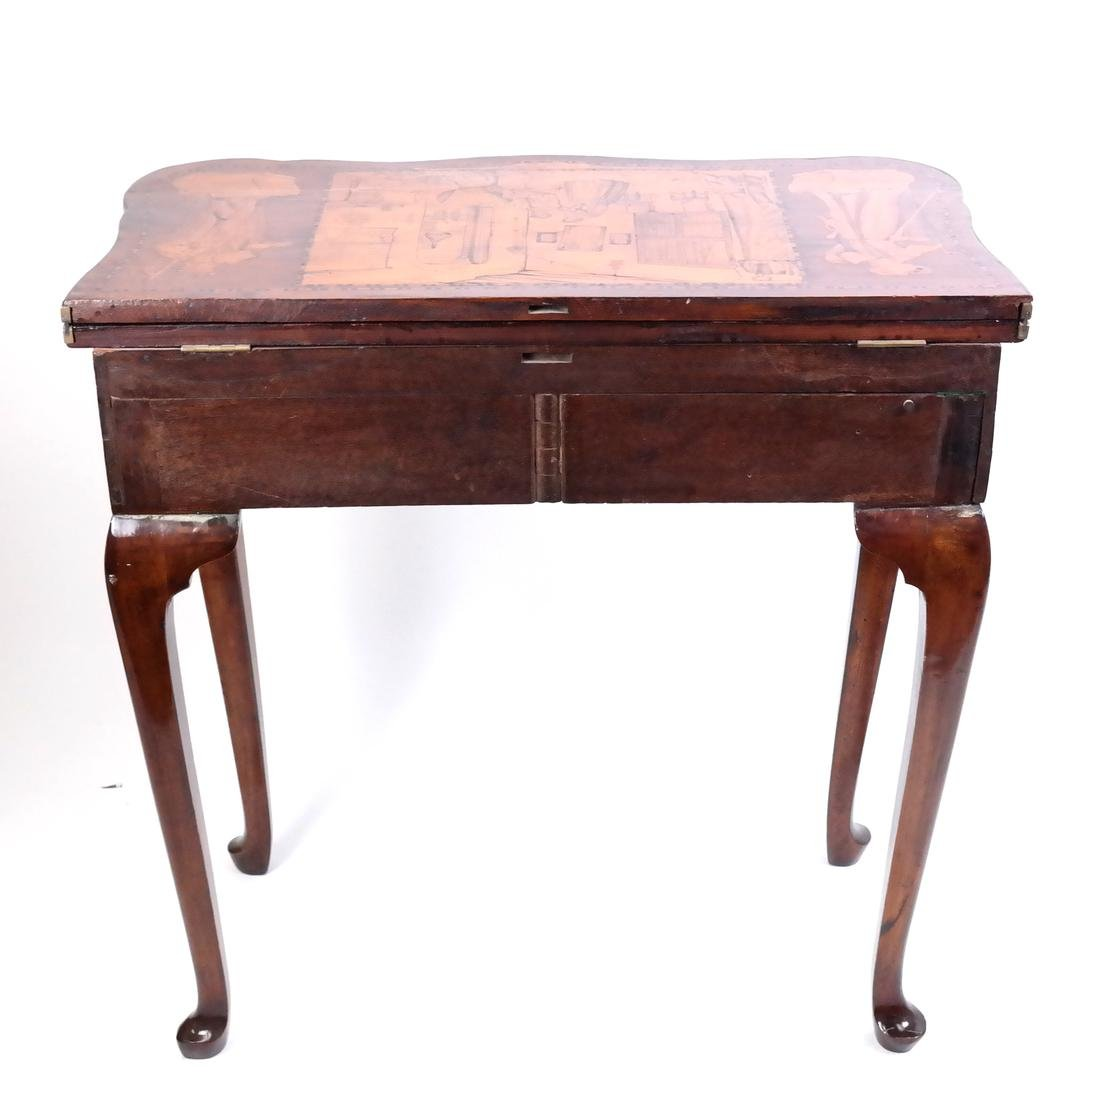 Antique Continental Games Table - 2